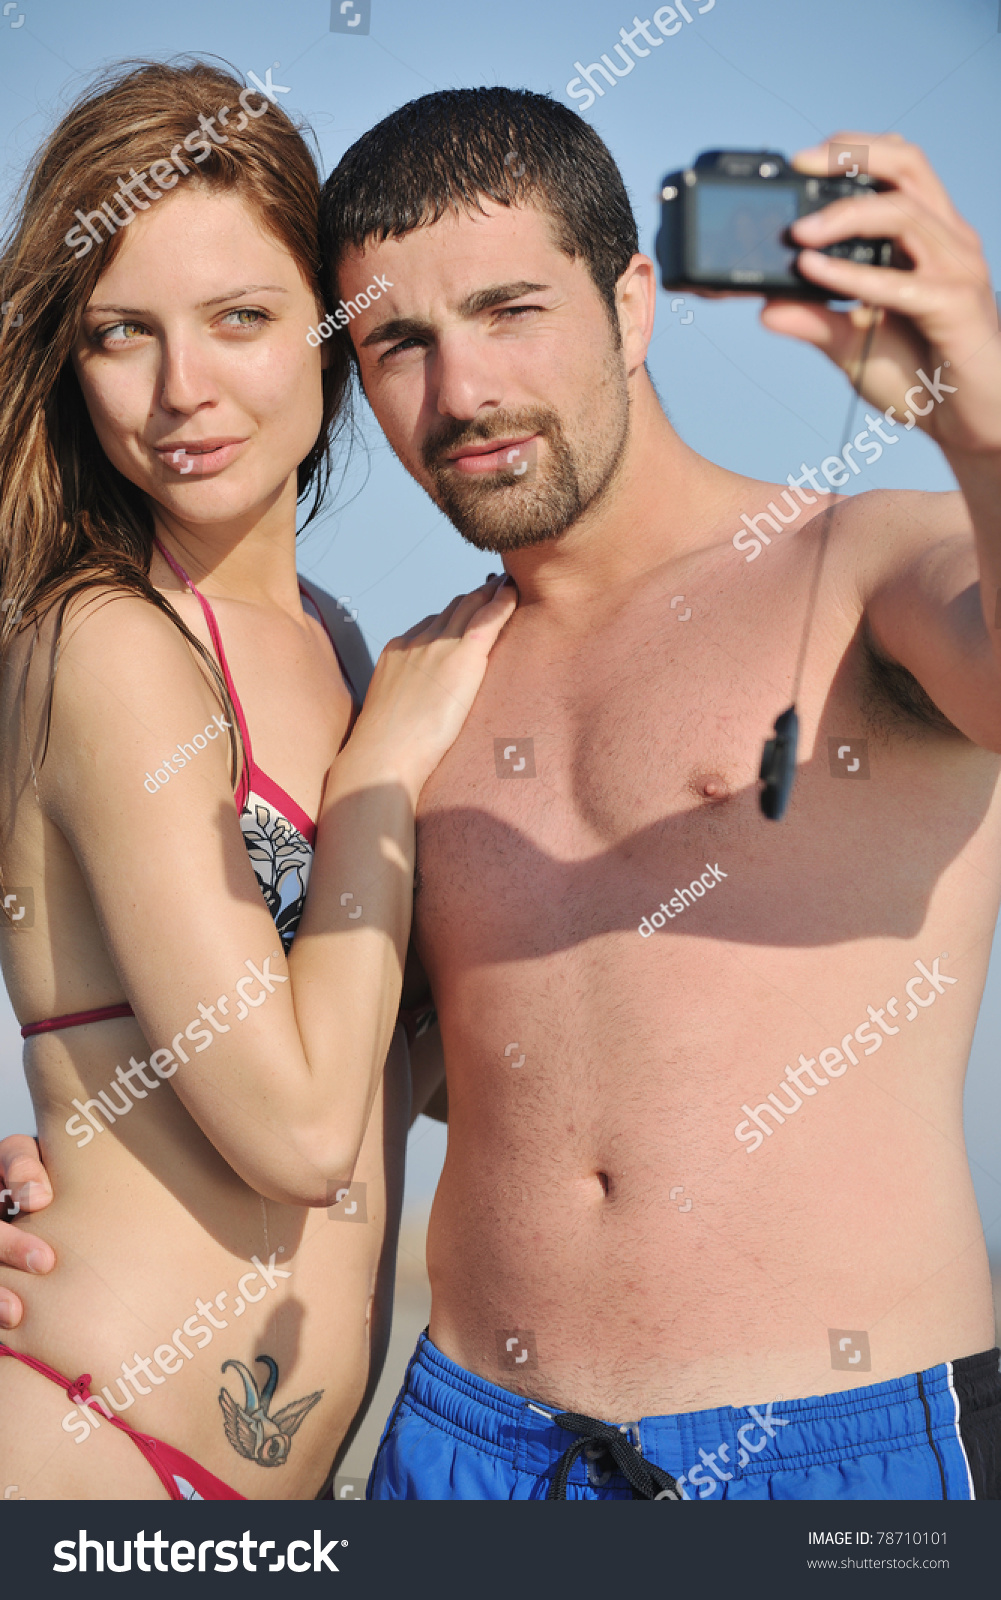 amateur young couple happy young couple in love taking amateur self portrait photos on beach